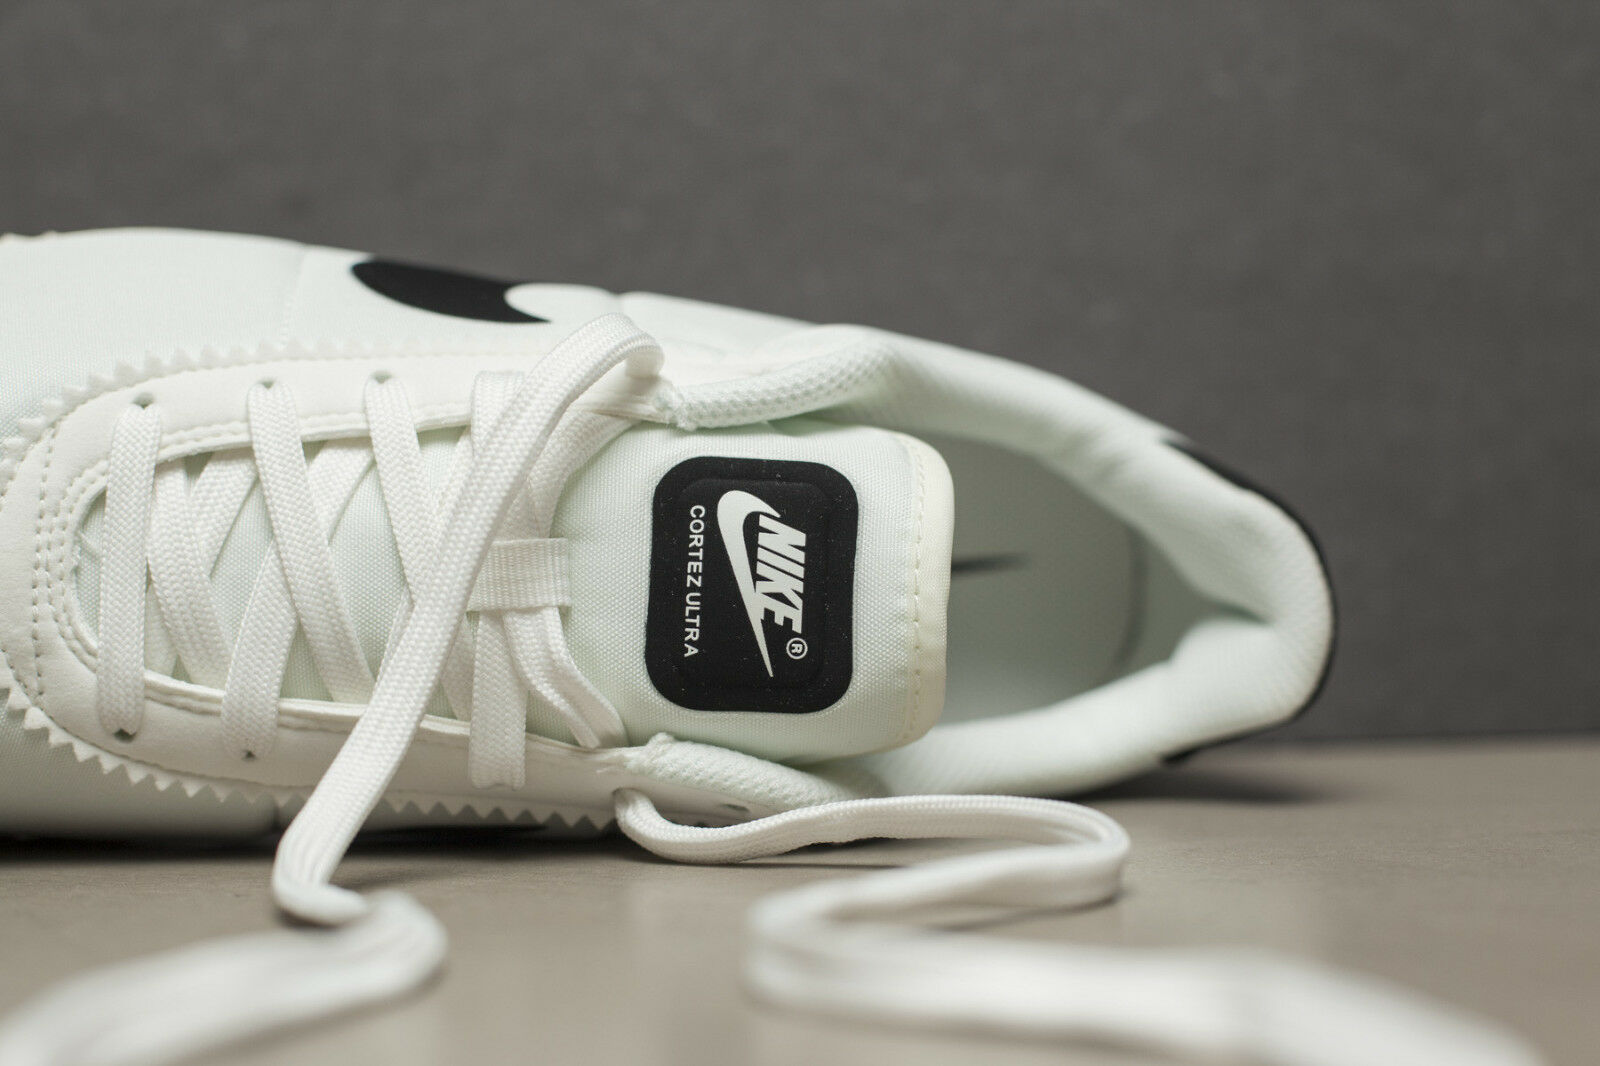 reputable site c8aa3 5d2fe ... NIKE CORTEZ ULTRA SD fonctionnement fonctionnement fonctionnement  Trainers chaussures Gym Casual - Sail - Various Tailles ...